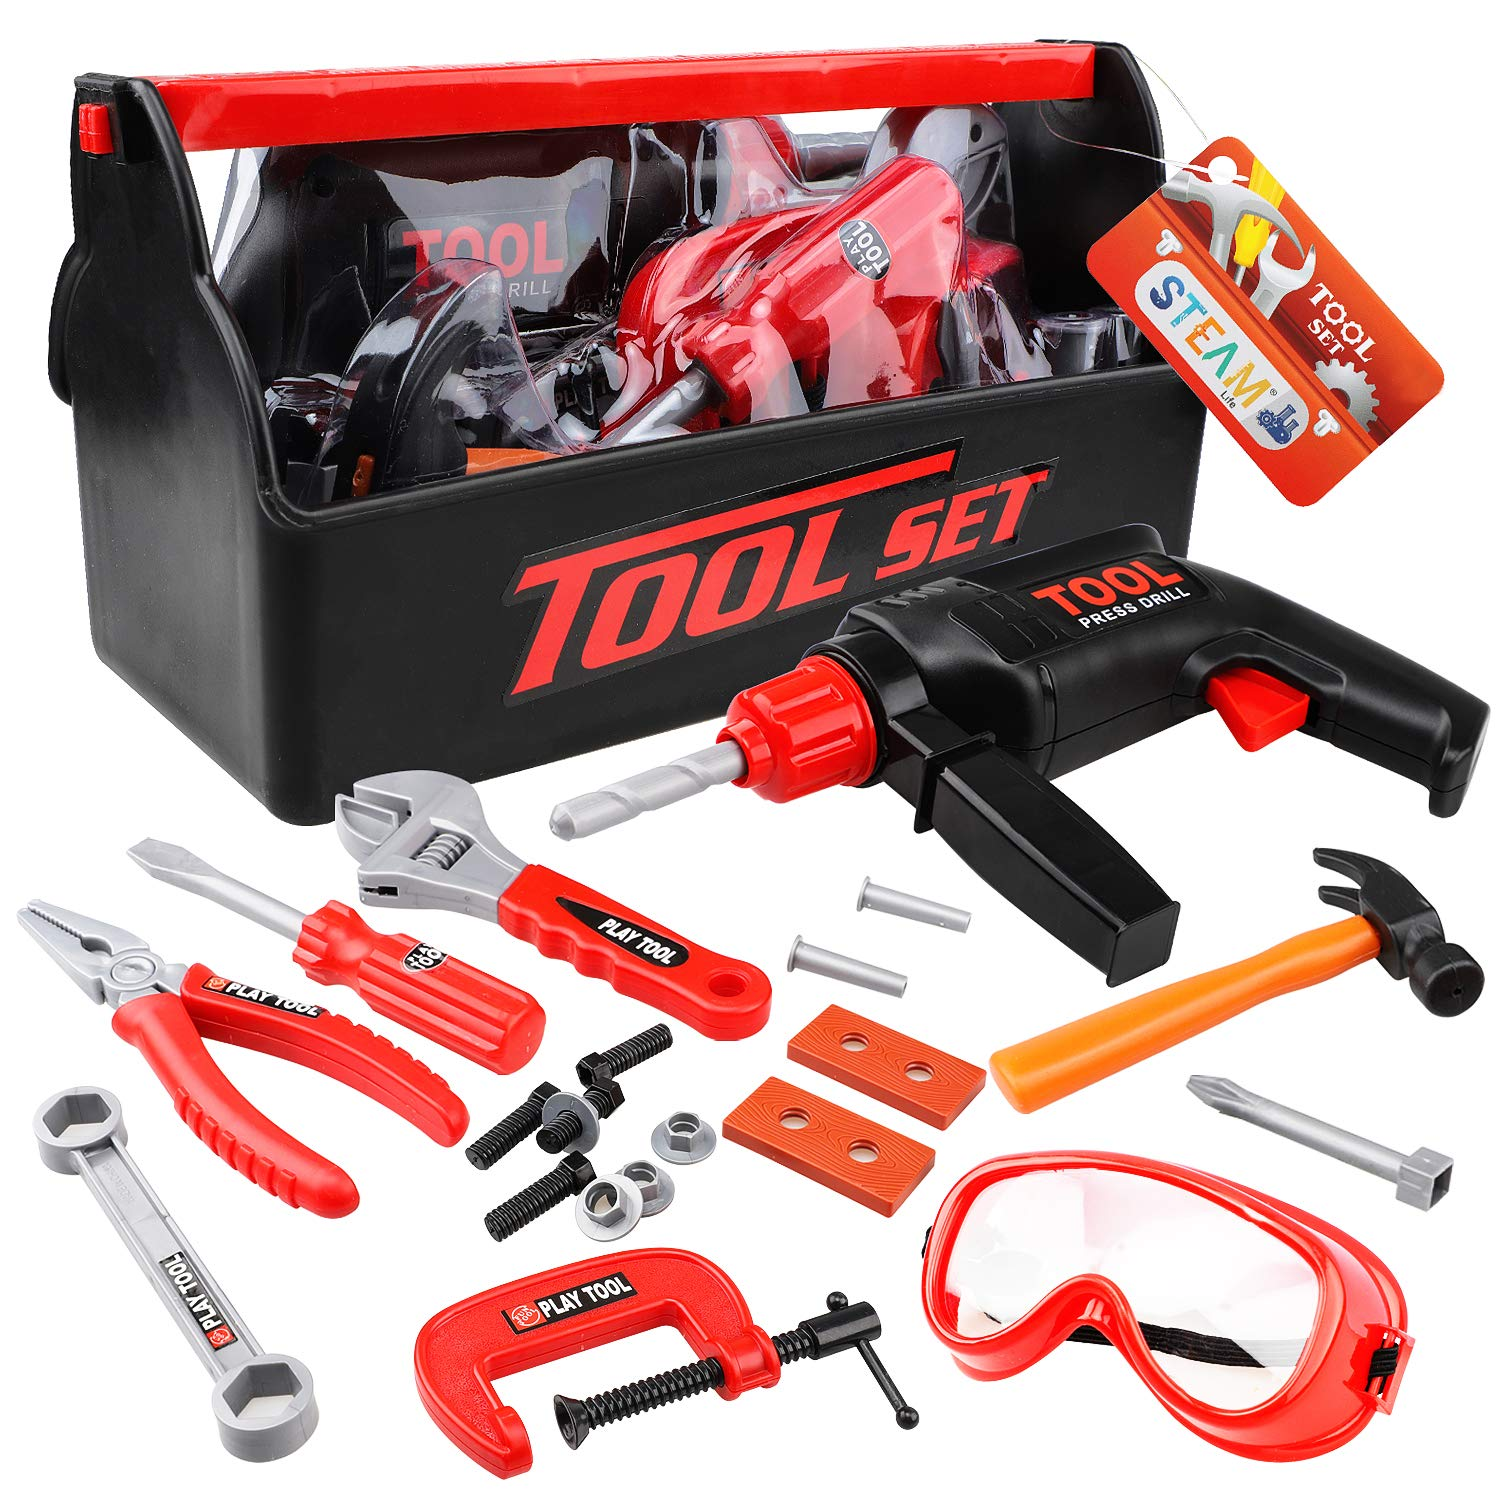 STEAM Life Kids Tool Toddlers